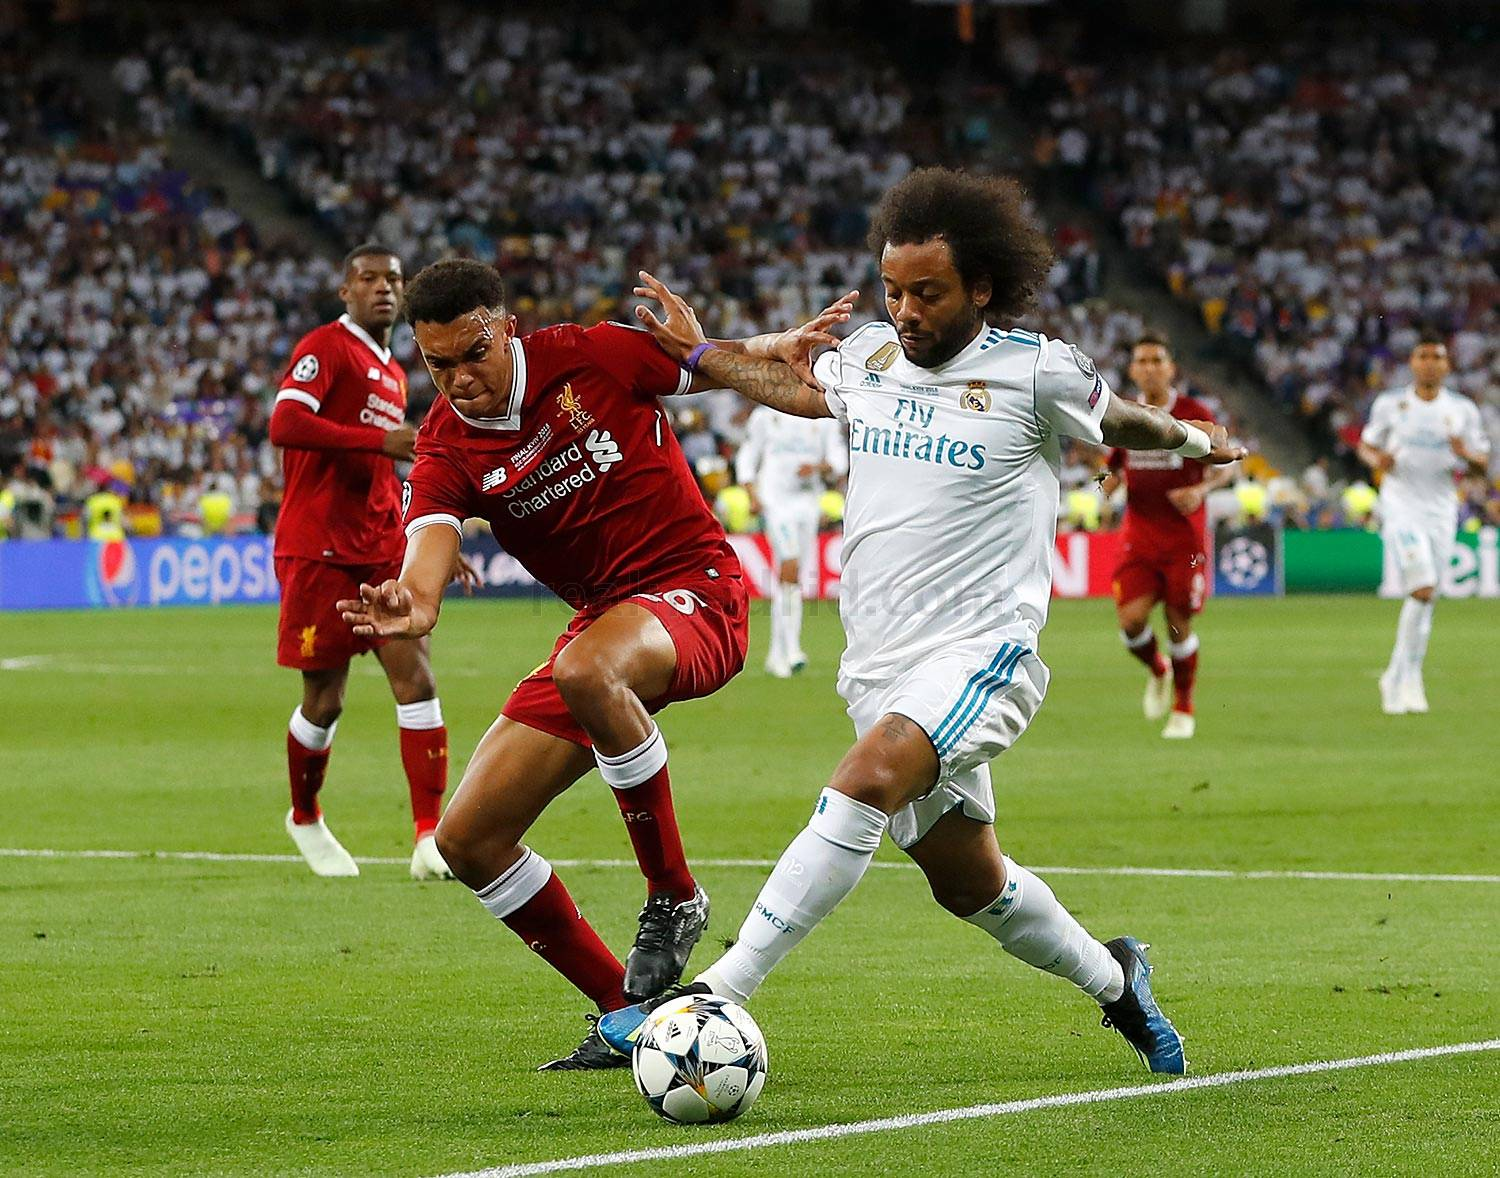 Real Madrid - Real Madrid - Liverpool - 26-05-2018